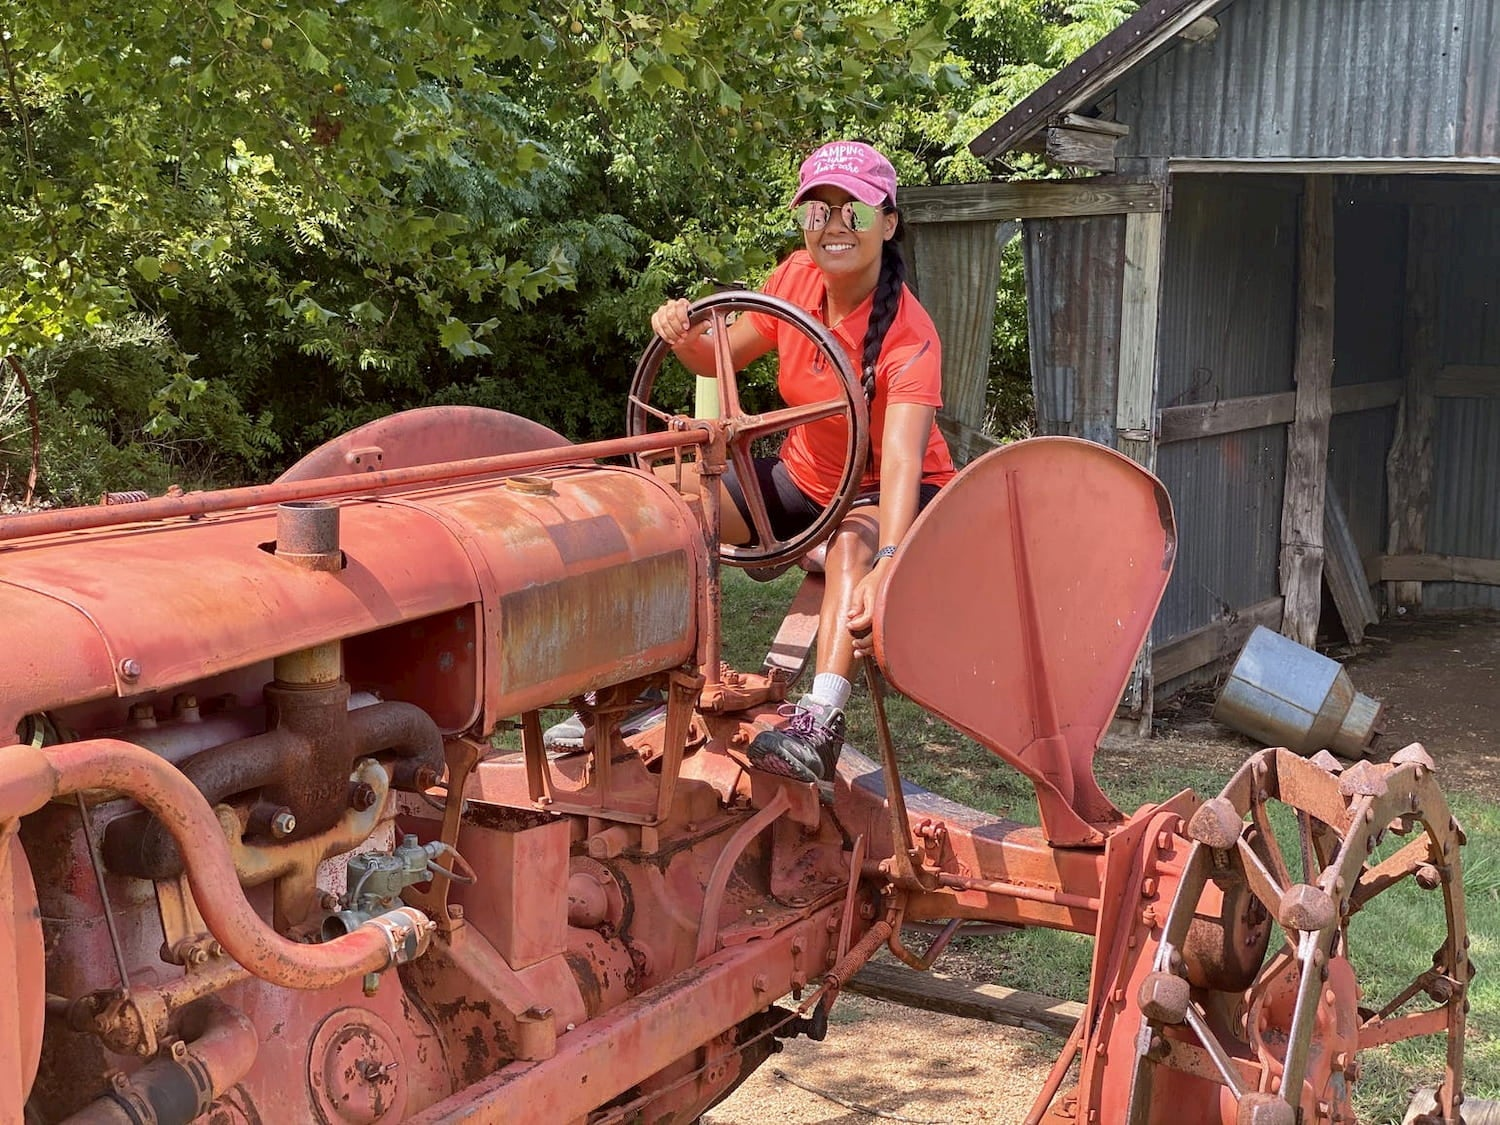 woman smiling on old timey tractor